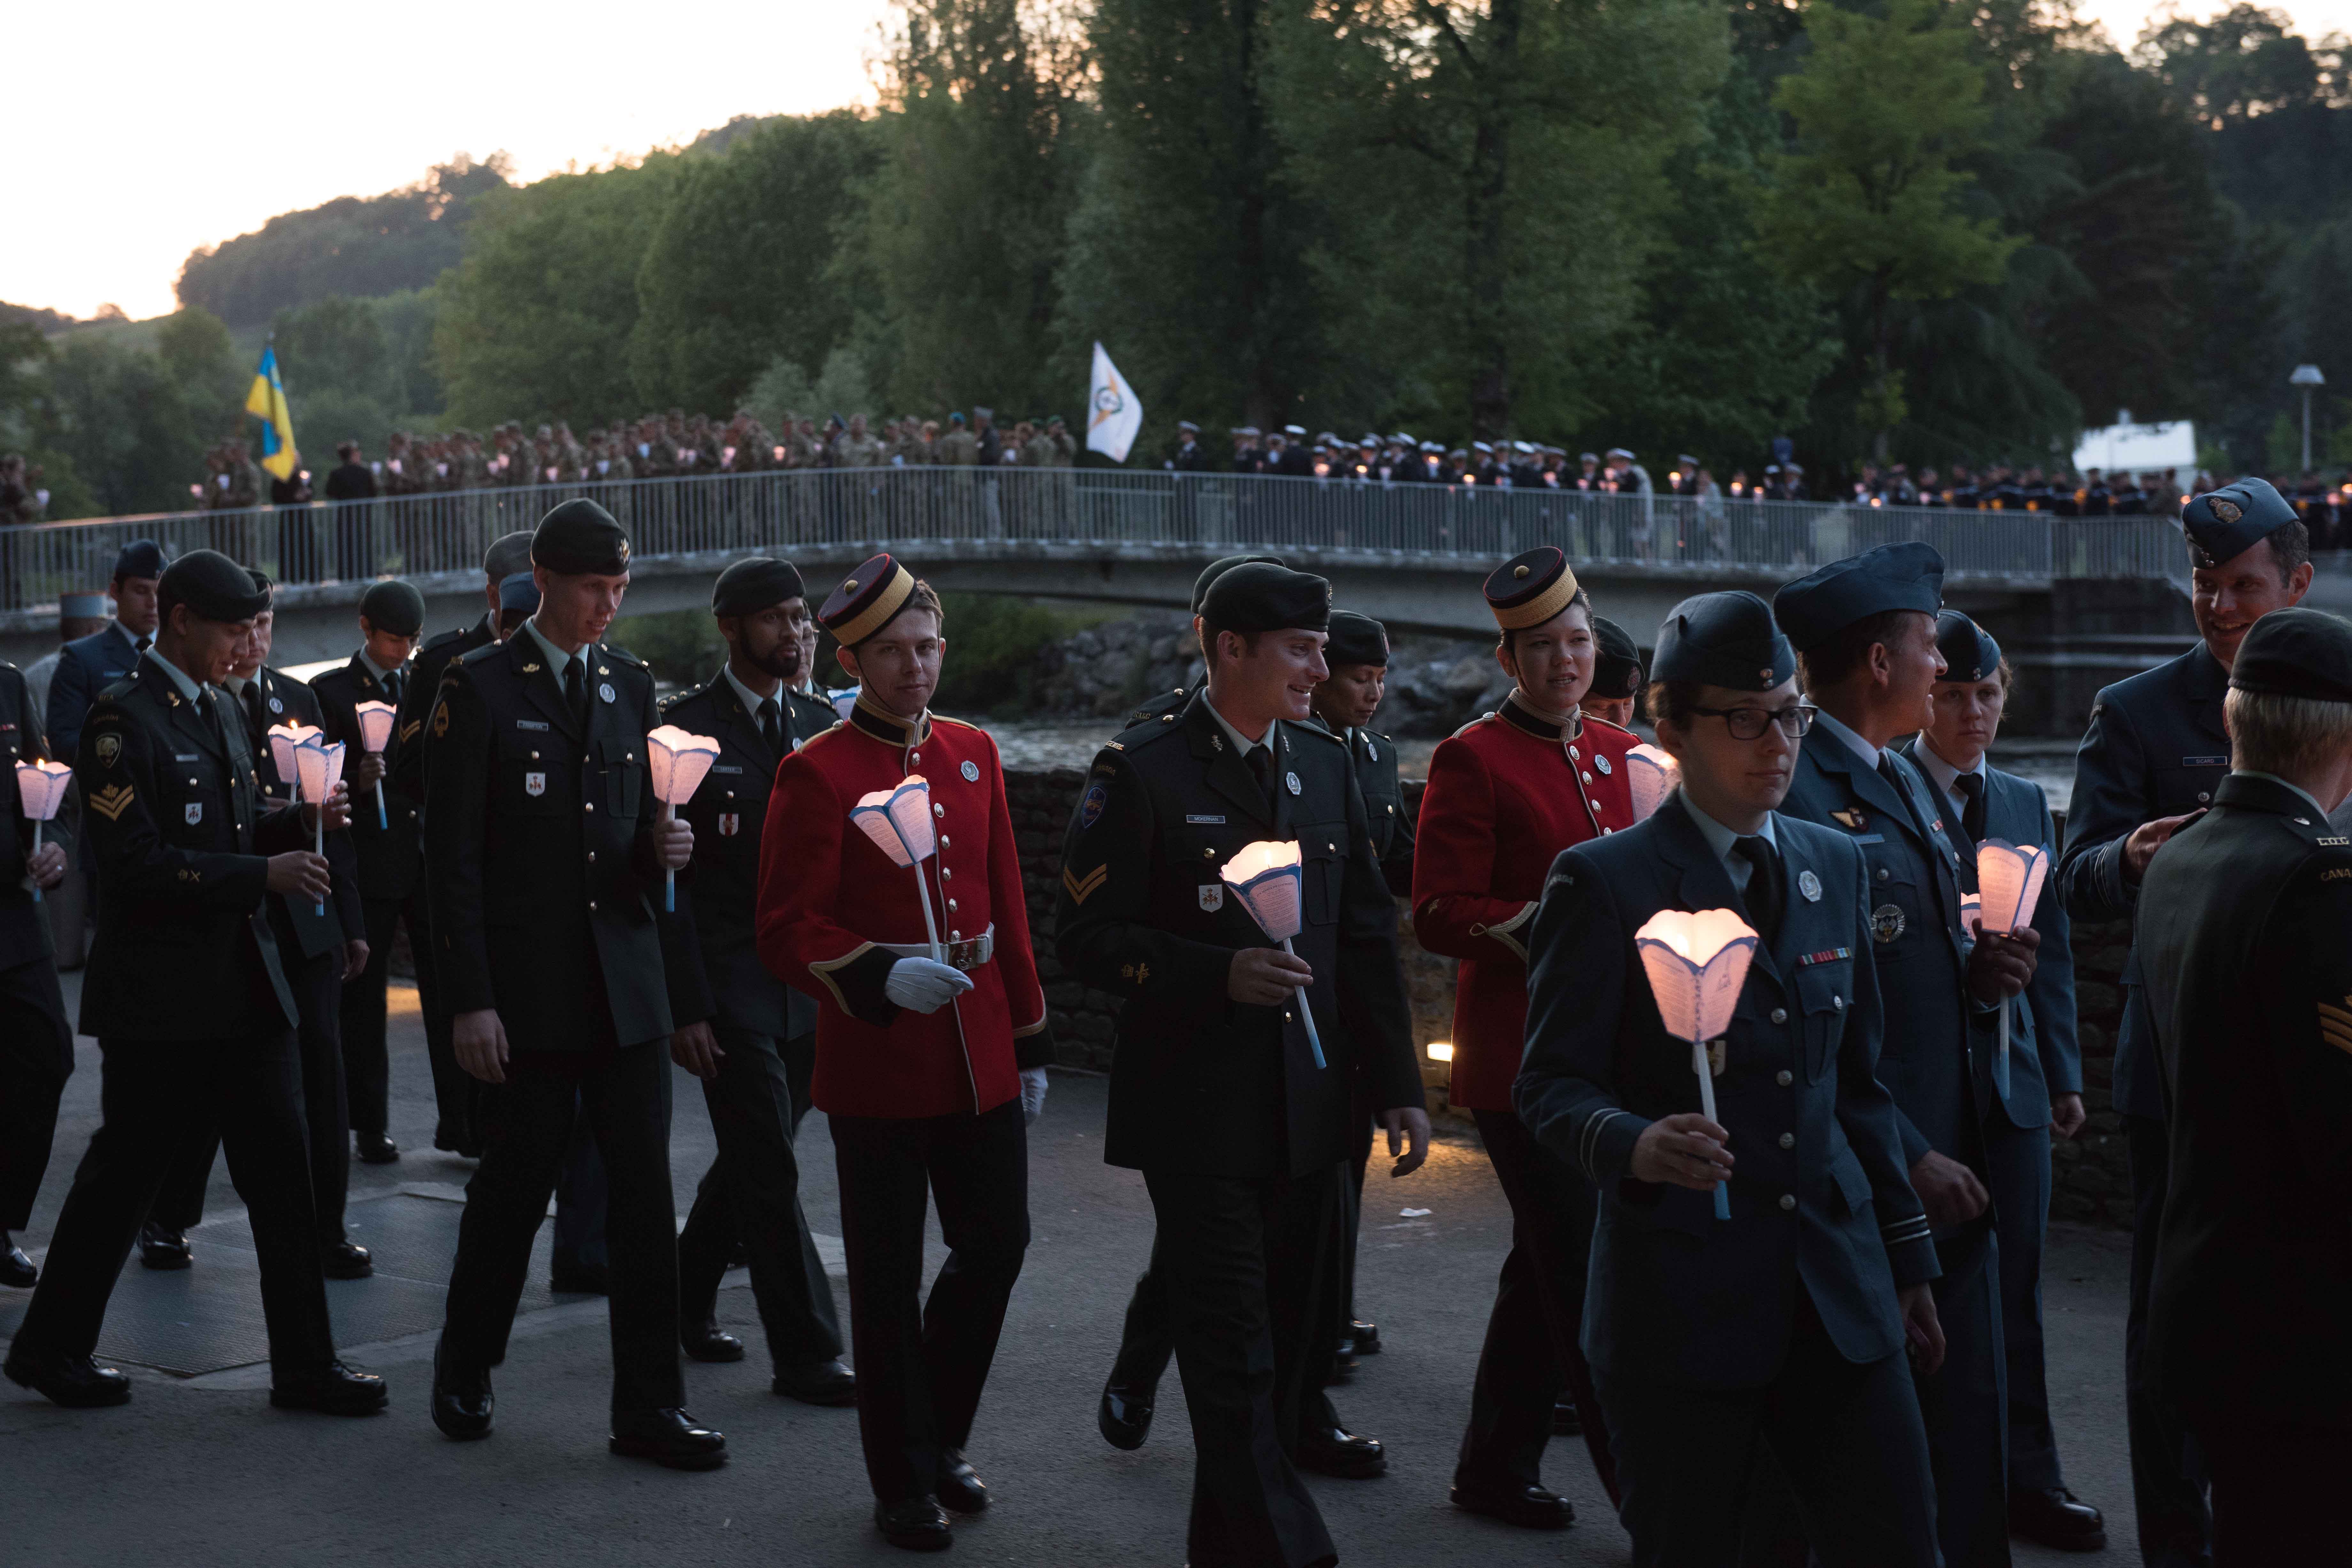 "The Canadian Armed Forces Contingent participates in the candlelight procession as the sun sets over Lourdes, France during the International Military Pilgrimage on May 20, 2017. Photo: Sergeant Dwayne ""George"" Janes, Army Public Affairs. ©2017 DND/MDN Canada."